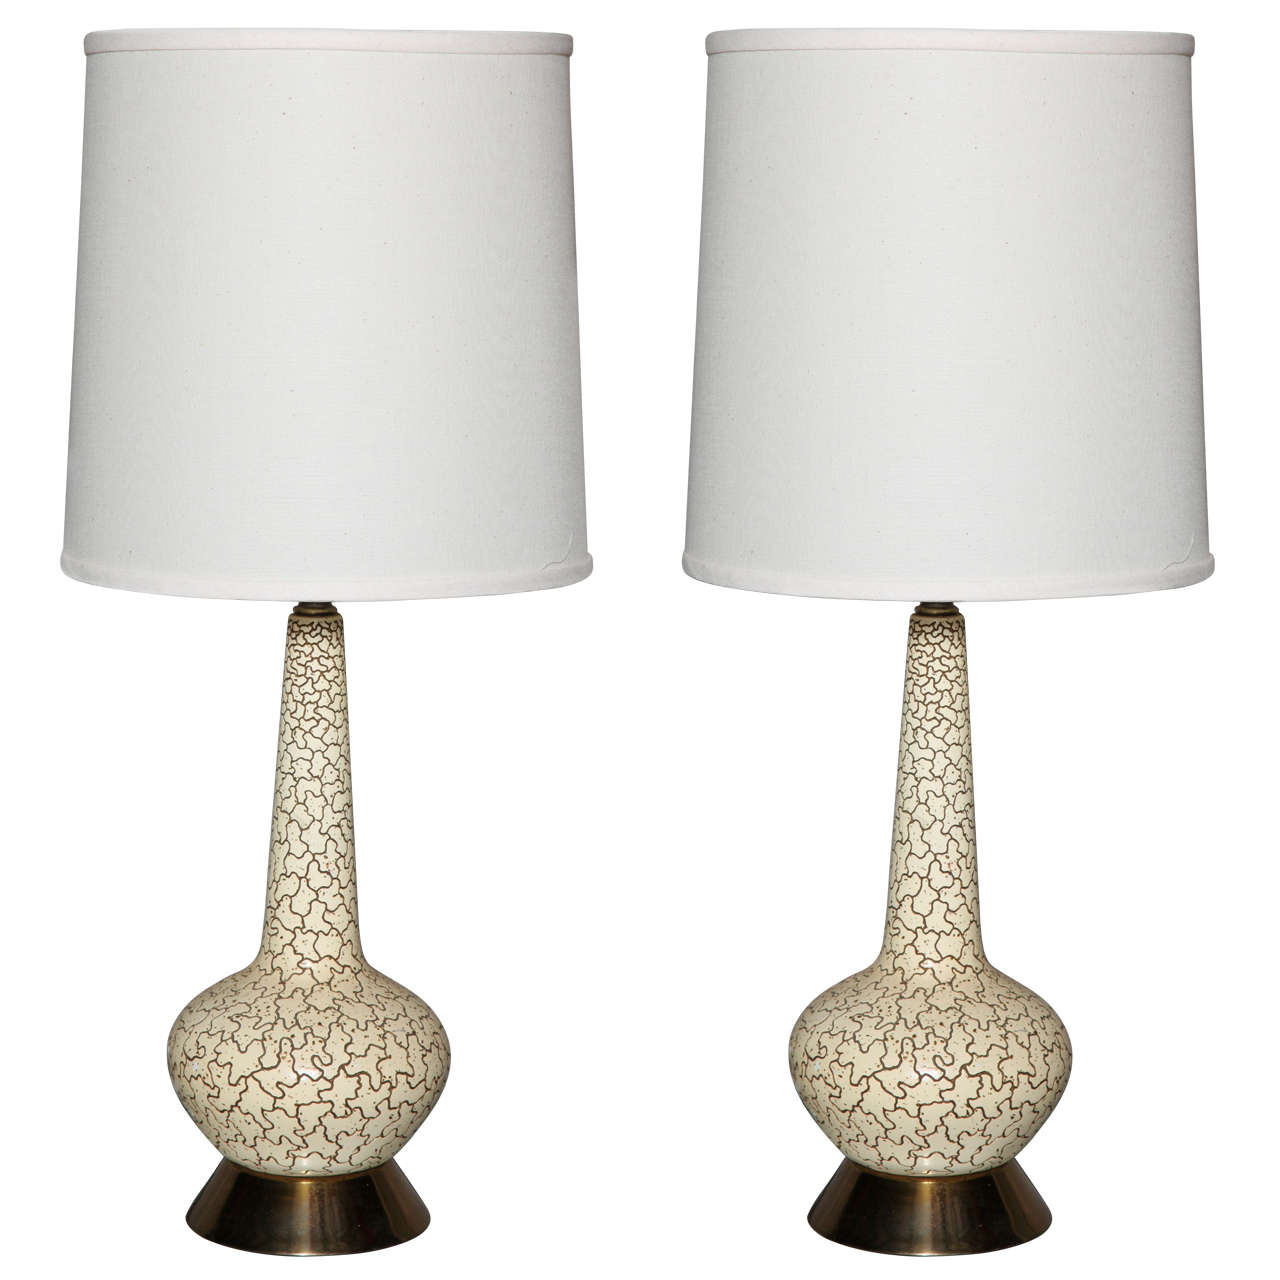 Pair Of Mid Century Etched Ceramic Table Lamps At 1stdibs